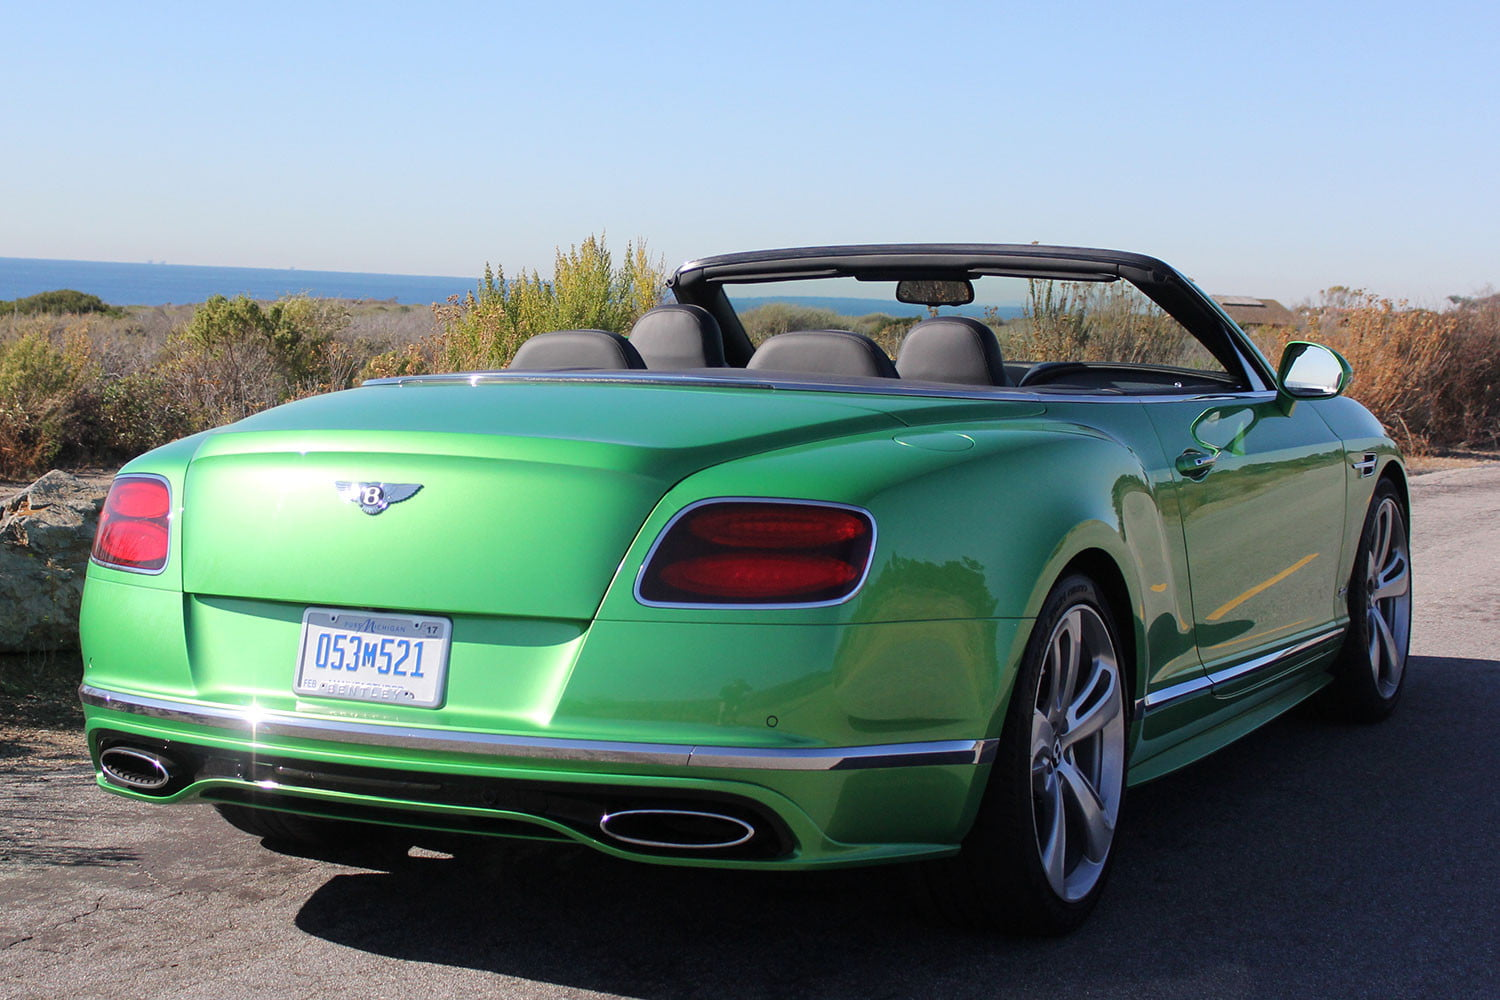 2016 bentley continental gtc speed convertible review digital trends. Black Bedroom Furniture Sets. Home Design Ideas